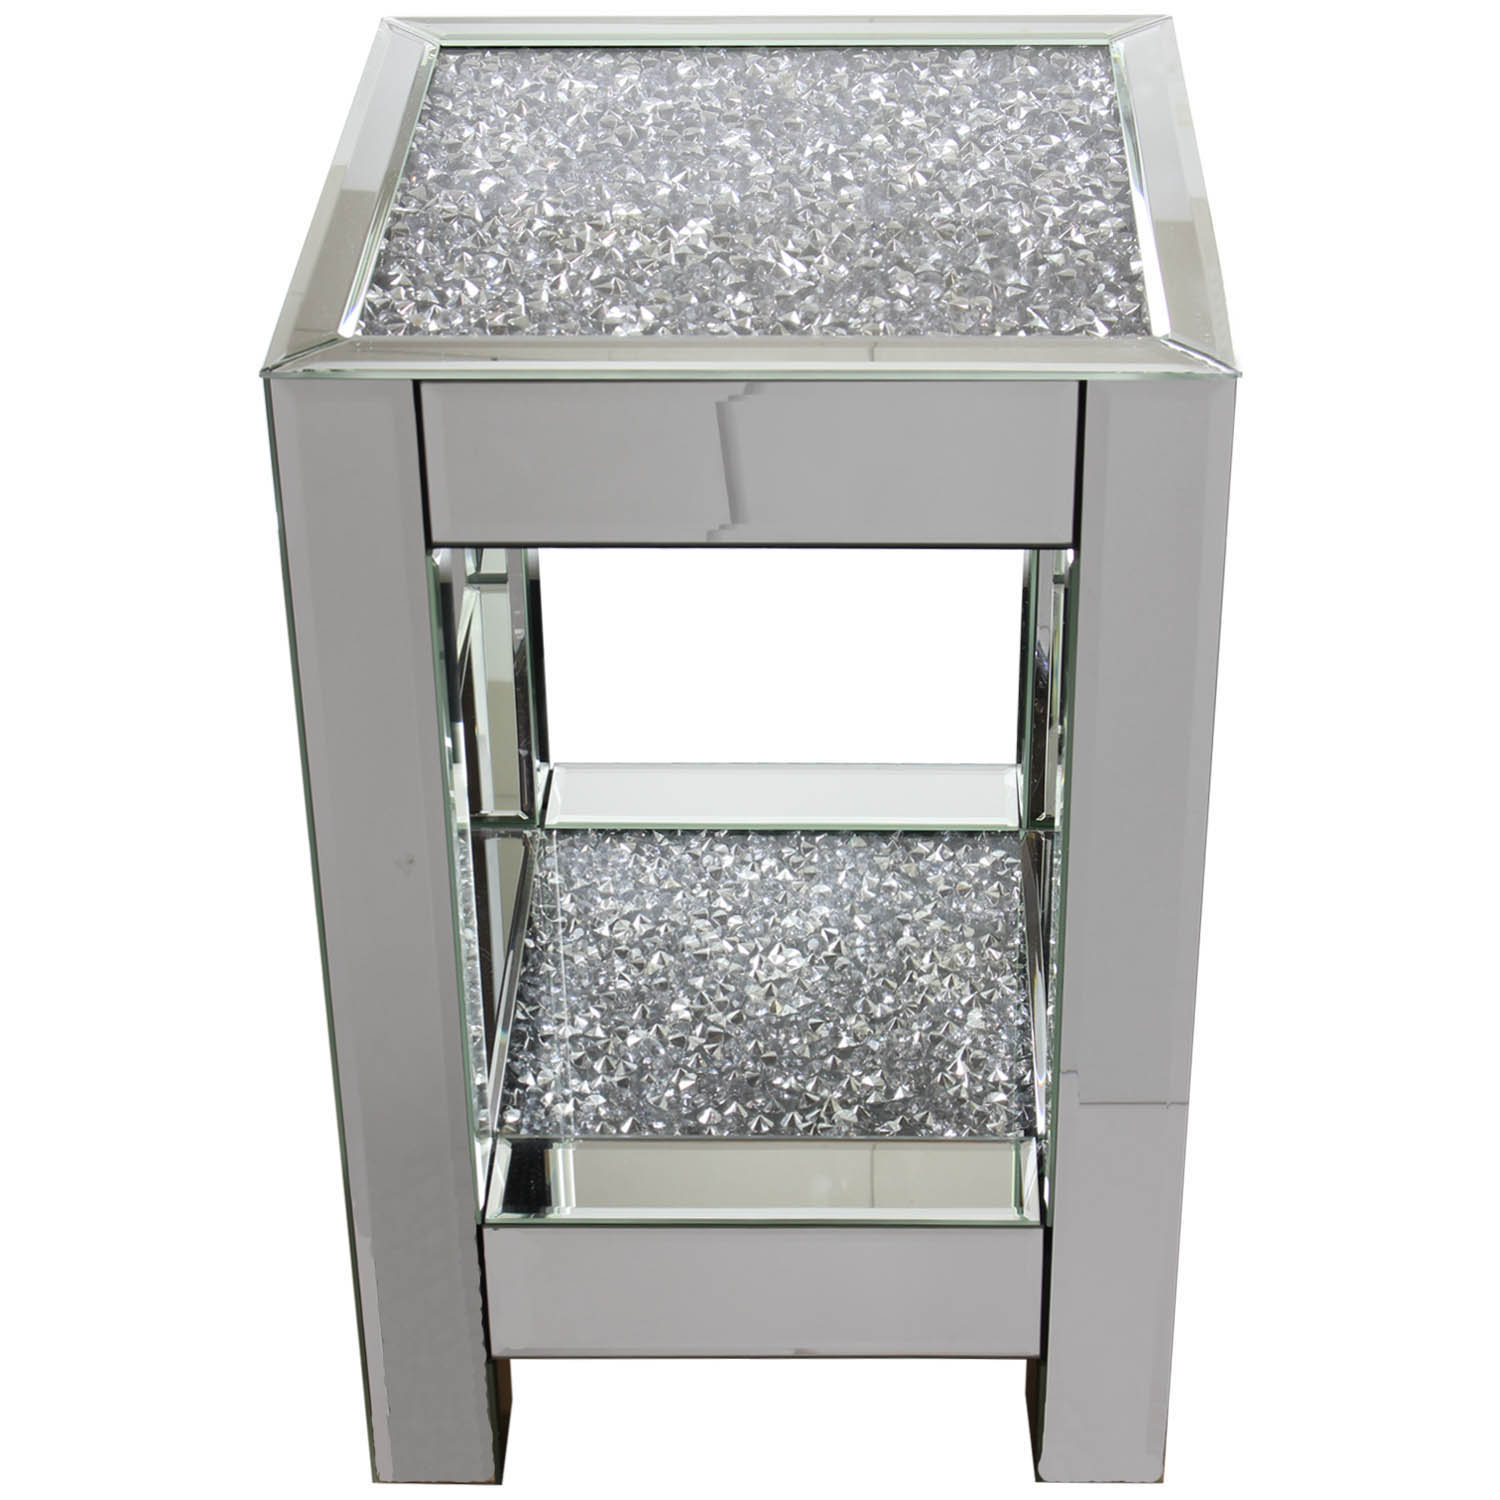 Square Mirror Crushed Diamond Mirrored Glass Display Side Table Home